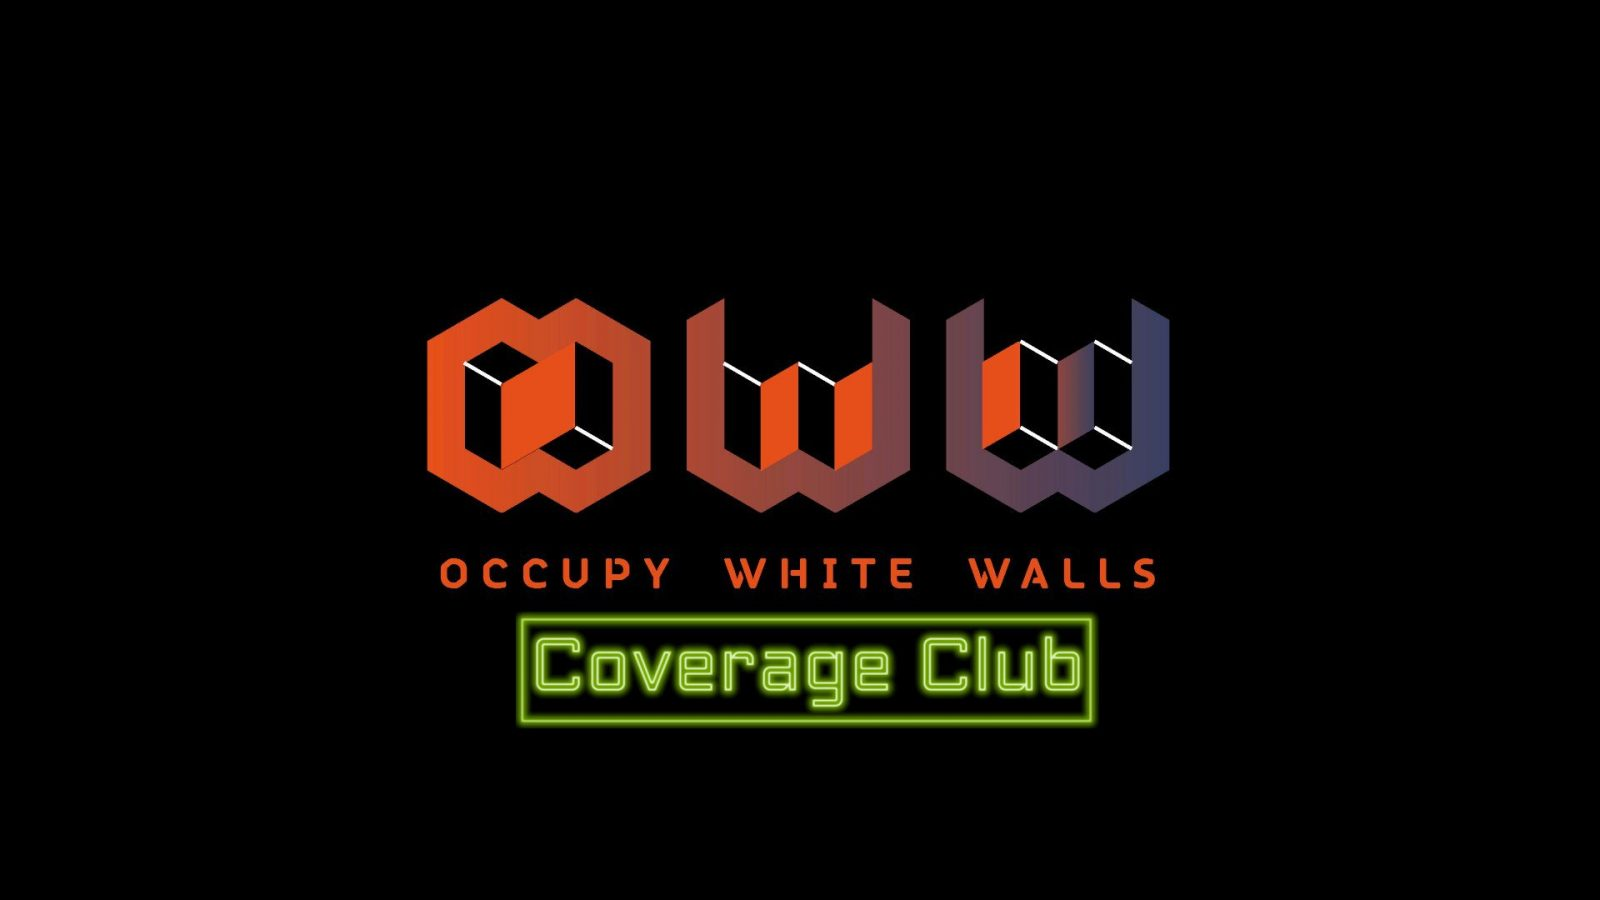 Occupy White Walls Can Occupy Your Time